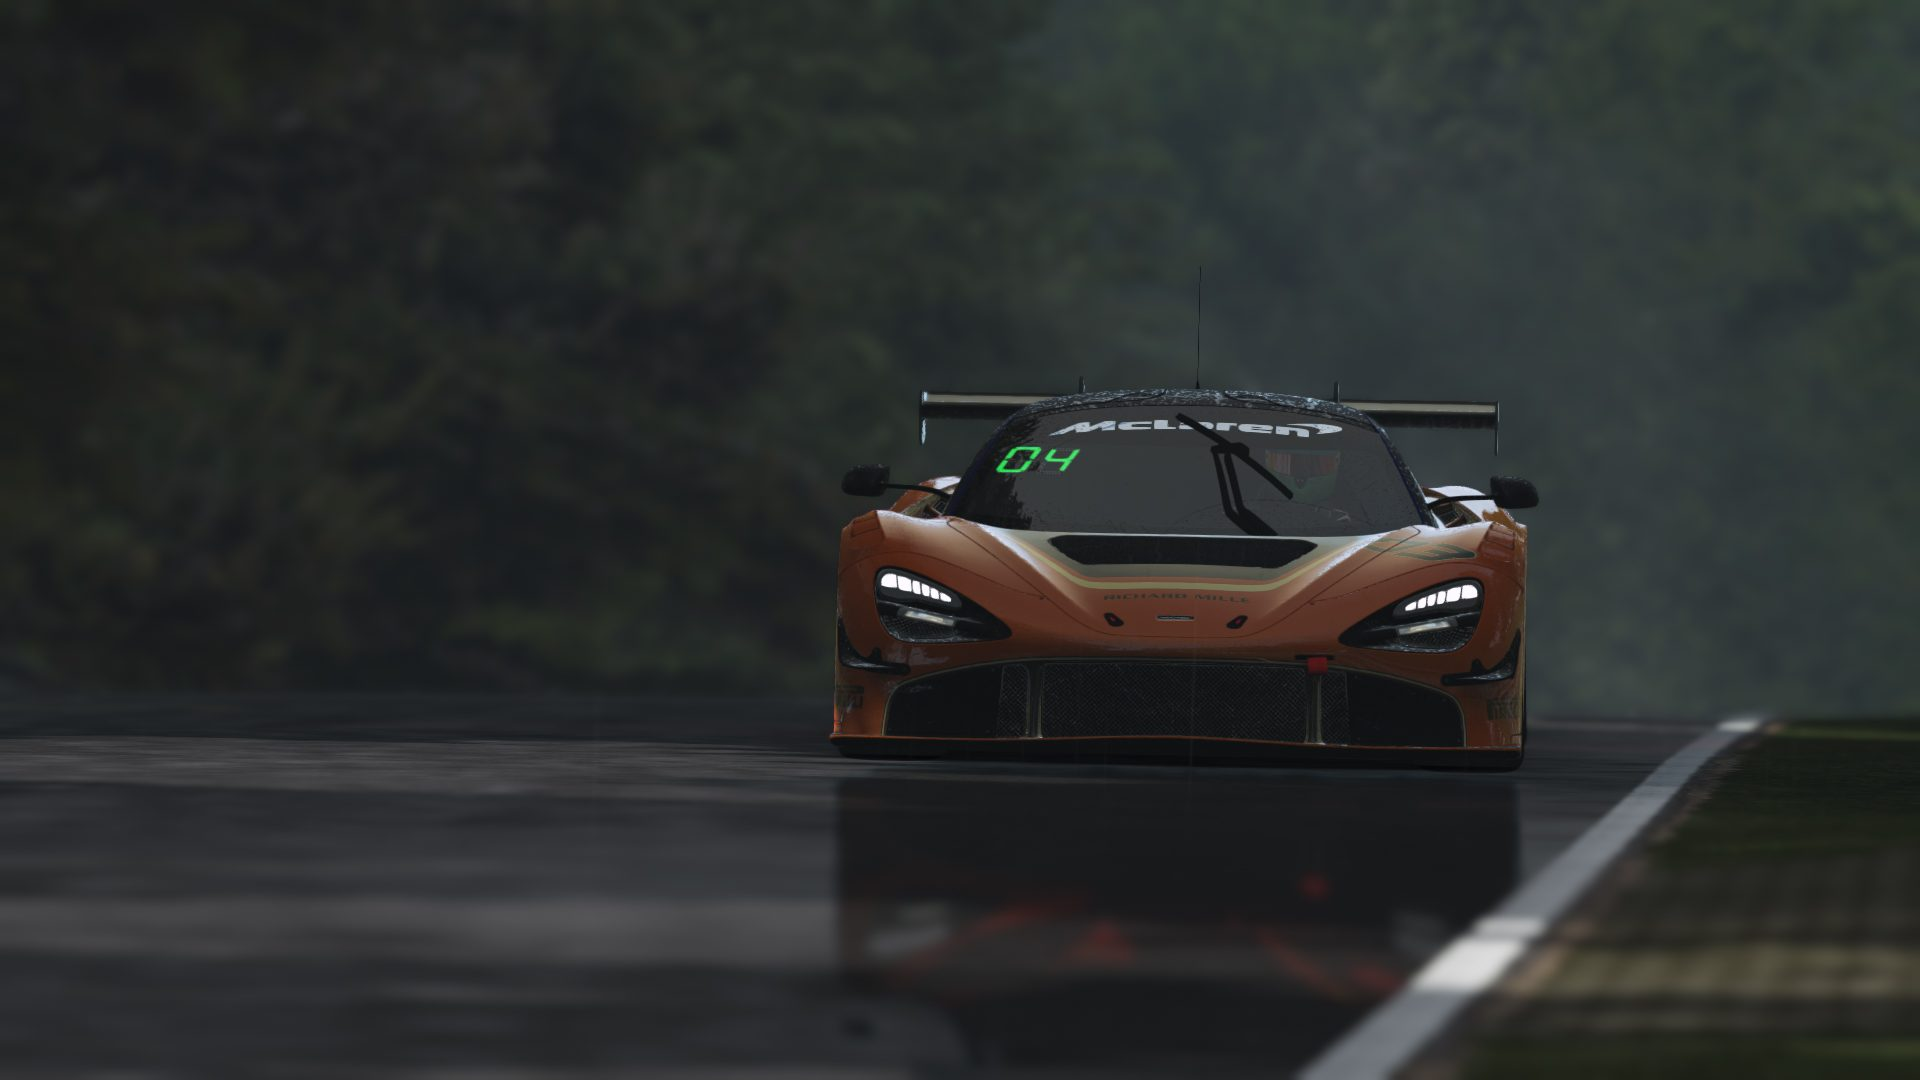 roadmap_september_nurburgring_05-1920x10